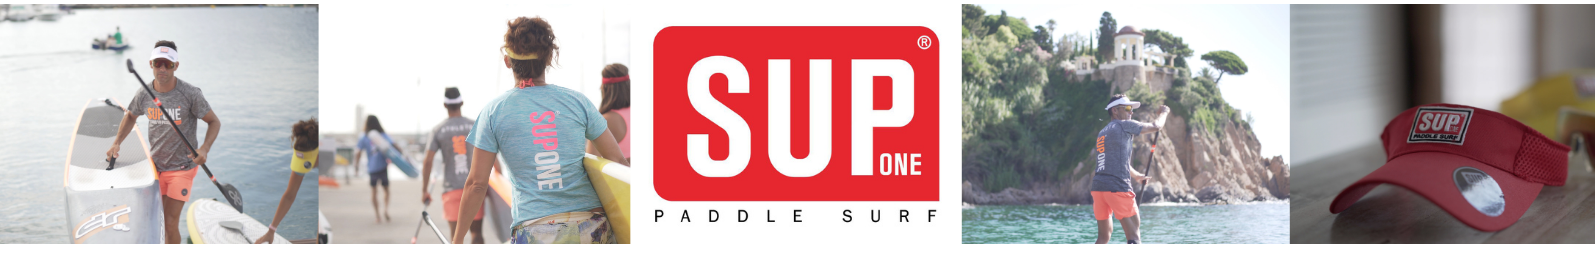 SUP-ONE PADDLE SURF